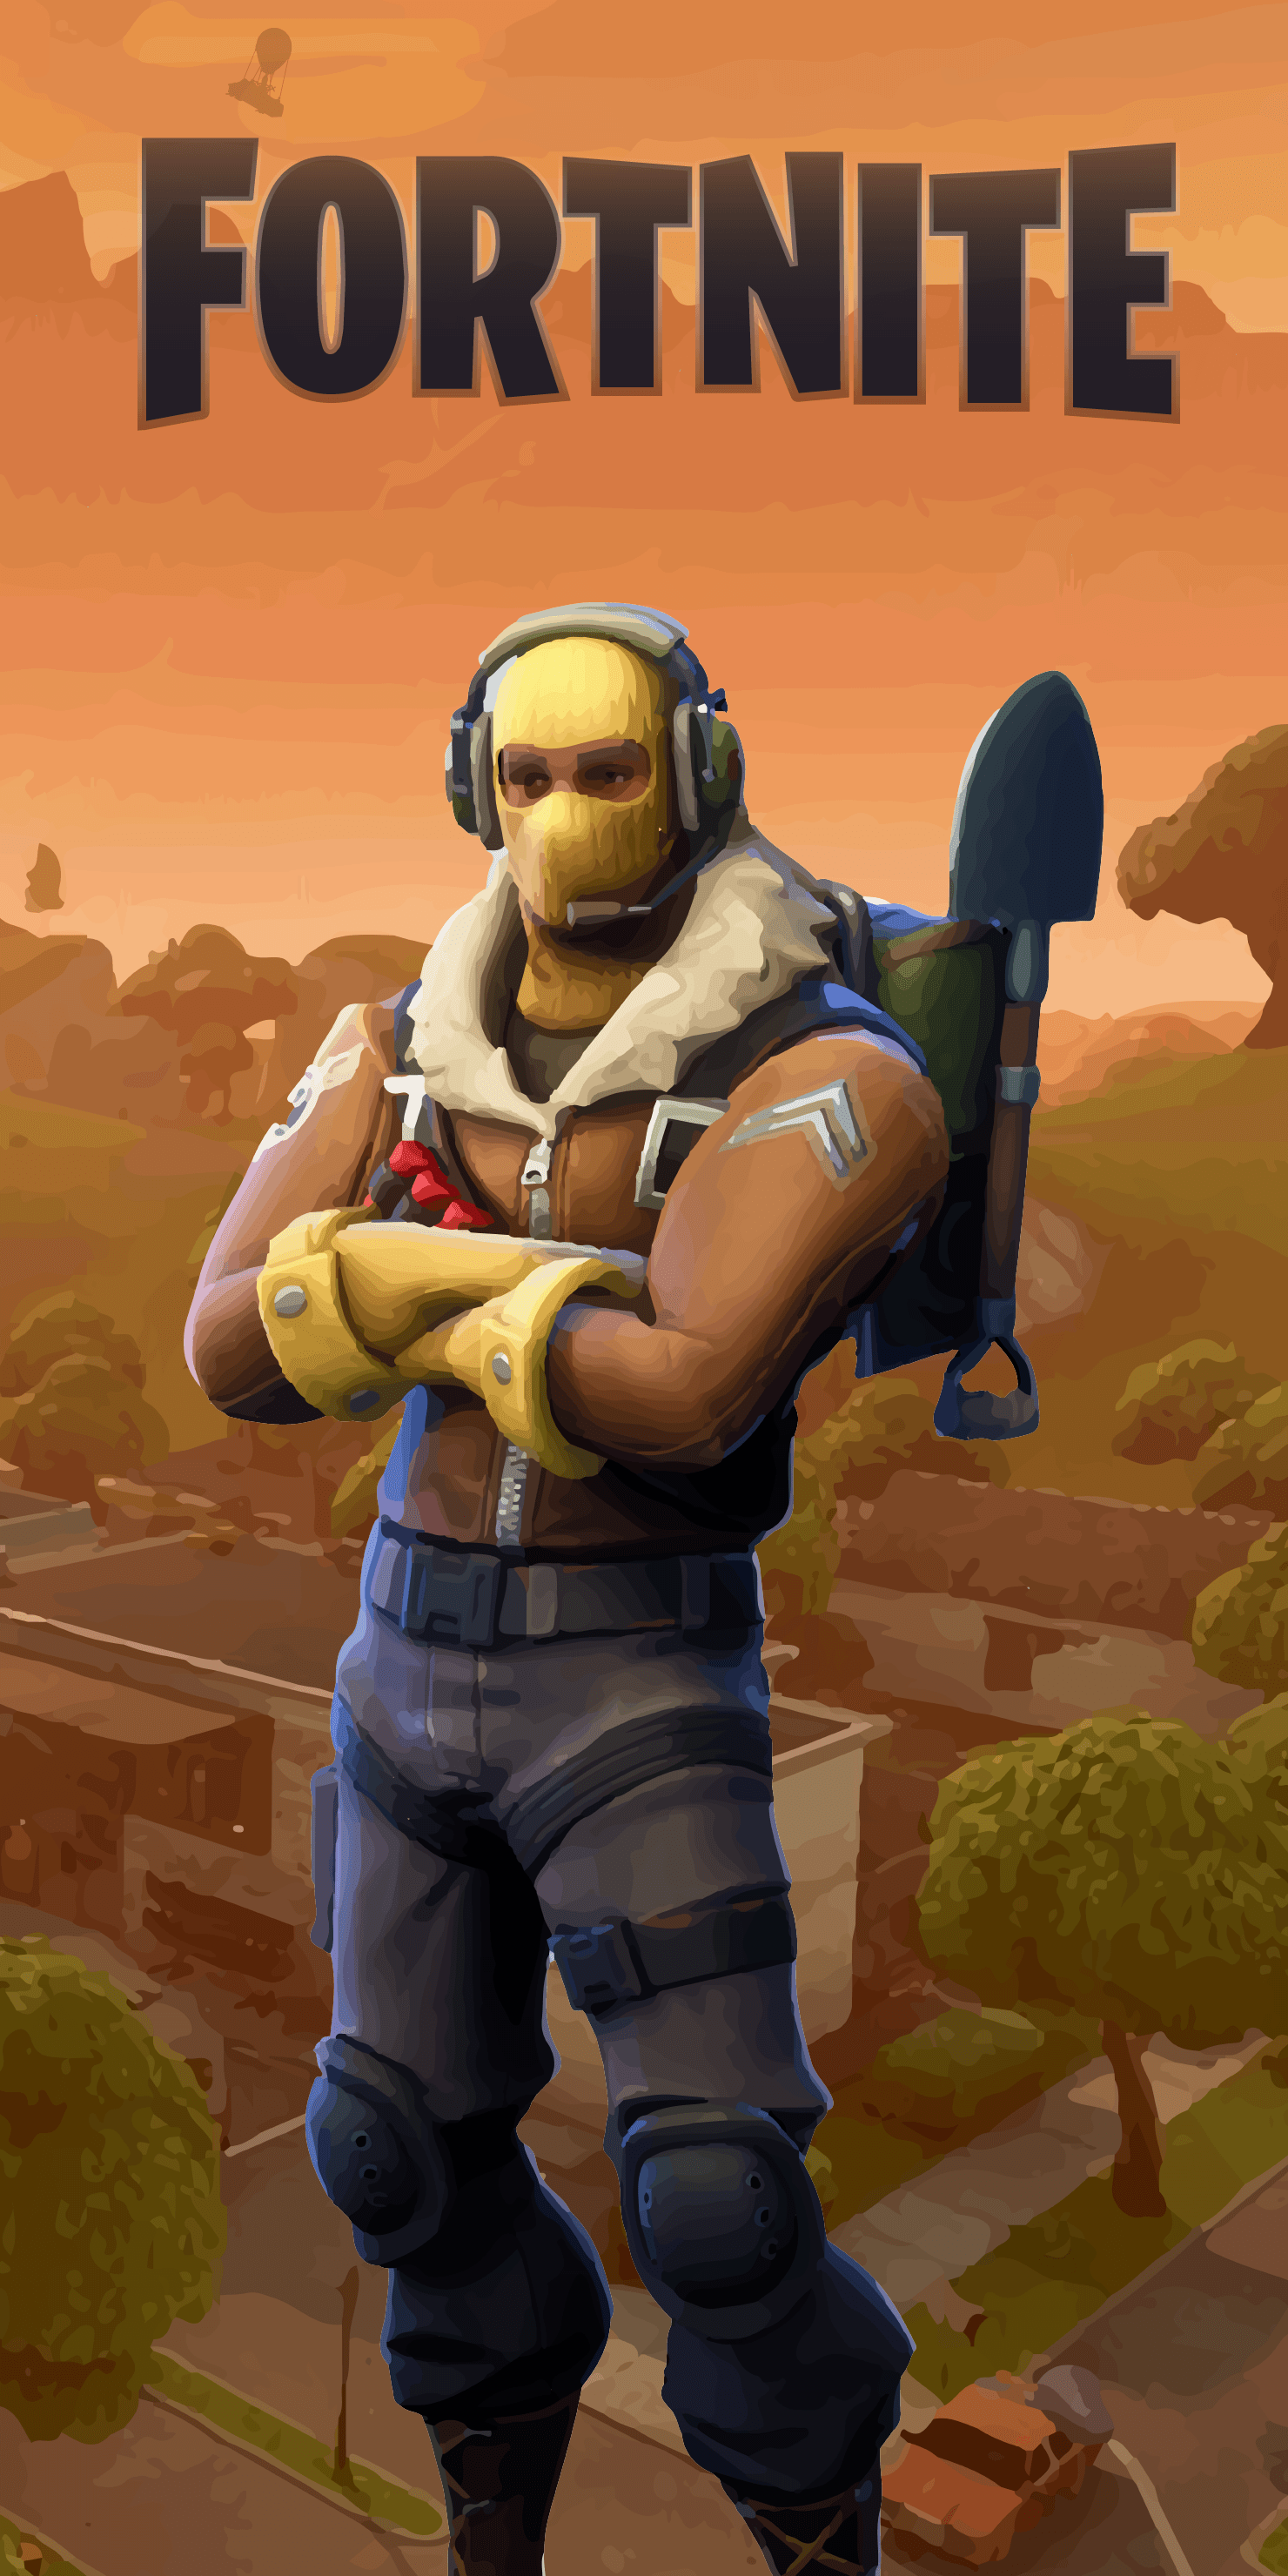 Fortnite Phone Wallpapers Top Free Fortnite Phone Backgrounds Wallpaperaccess